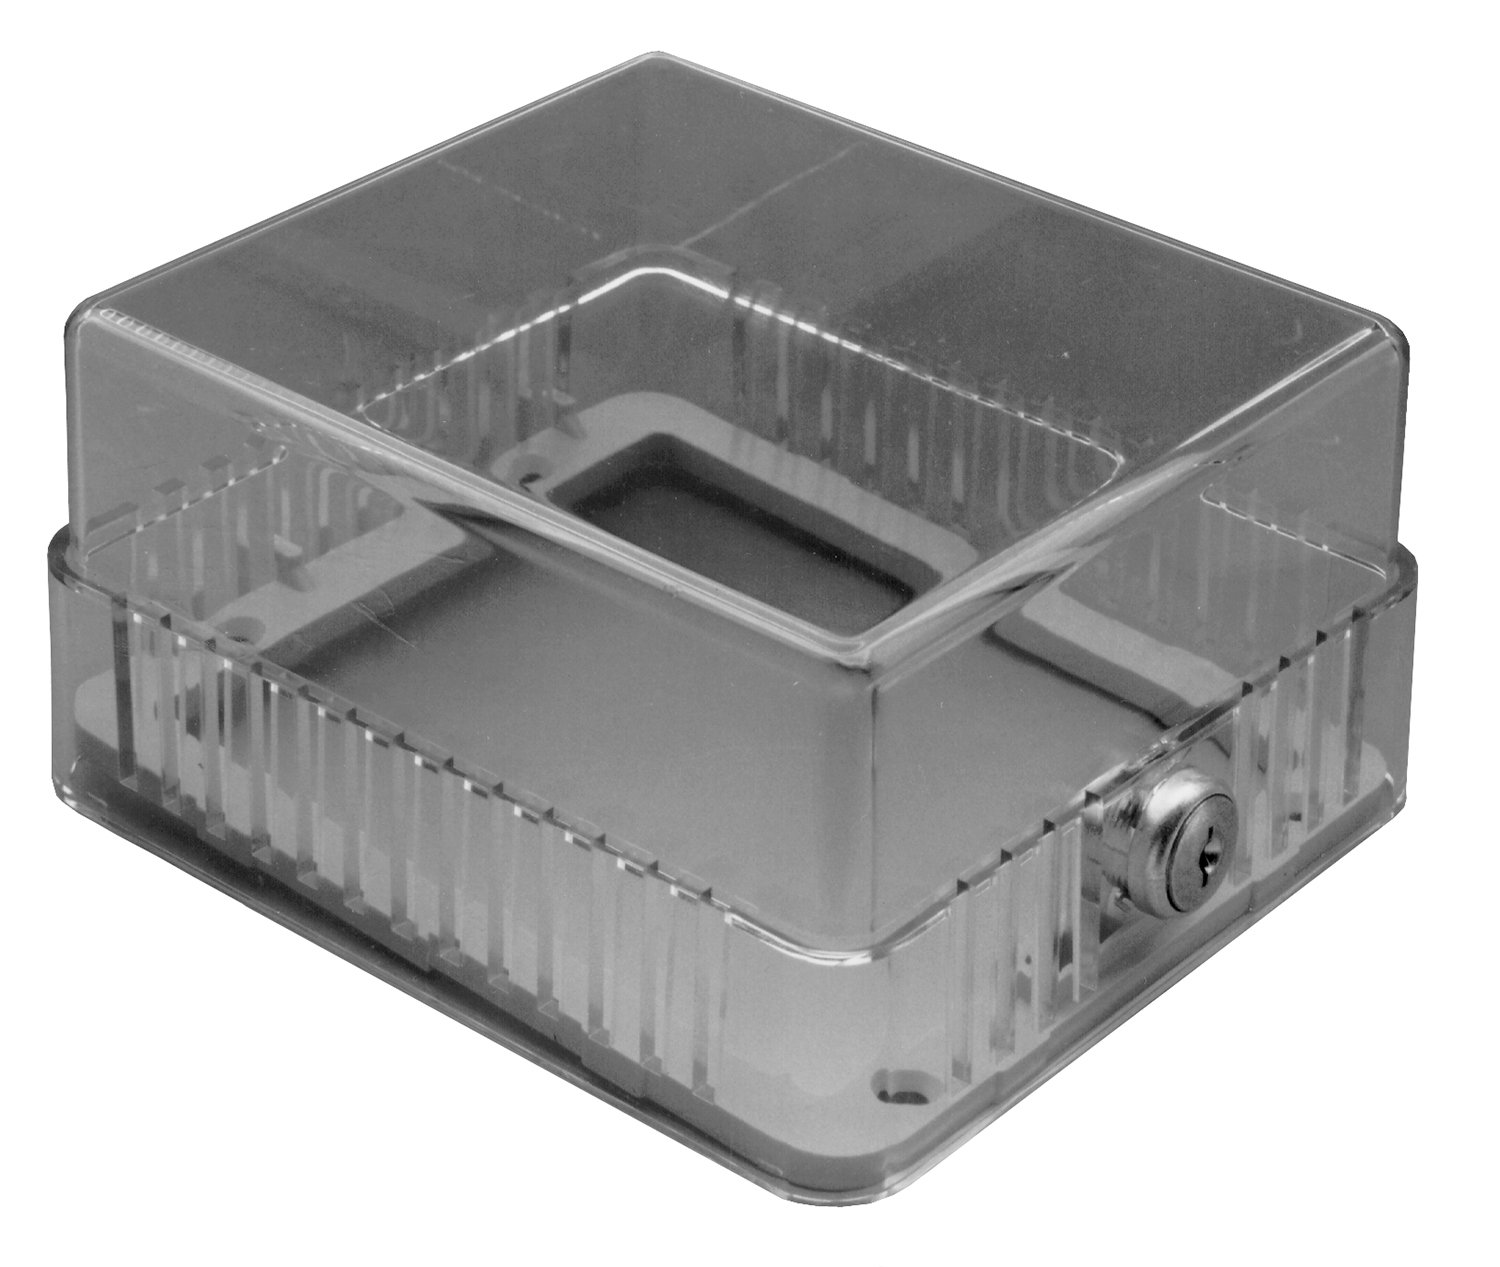 TPI Corporation TG2 Clear Plastic Thermostat Guard, 5.25''W x 5.25''H x 3.25'' Deep, Tumbler Lock, works with any Compatible Thermostat